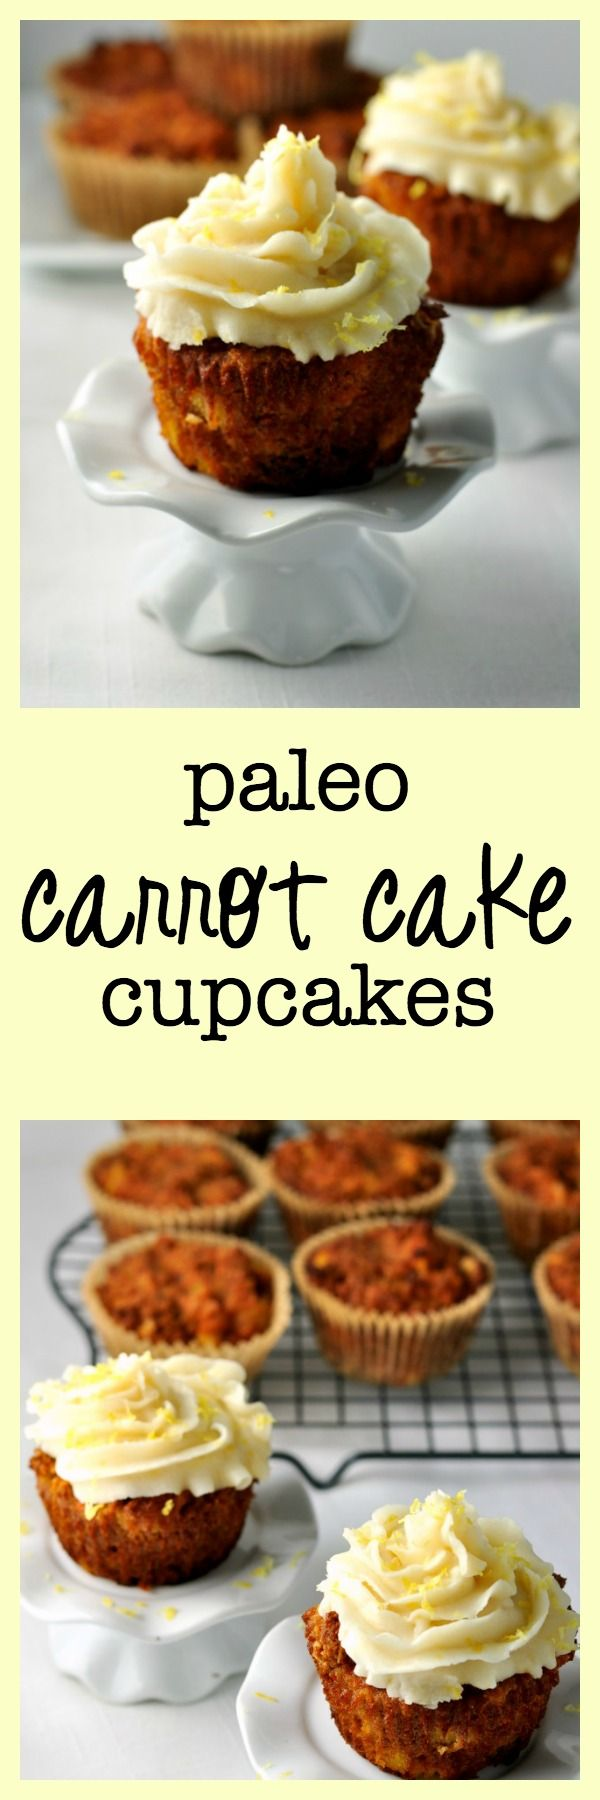 Paleo Carrot Cake Cupcakes with Lemon Coconut Butter frosting. These cupcakes are grain-free, dairy-free and refined sugar free. Seriously good! Tender and moist. via @enessman